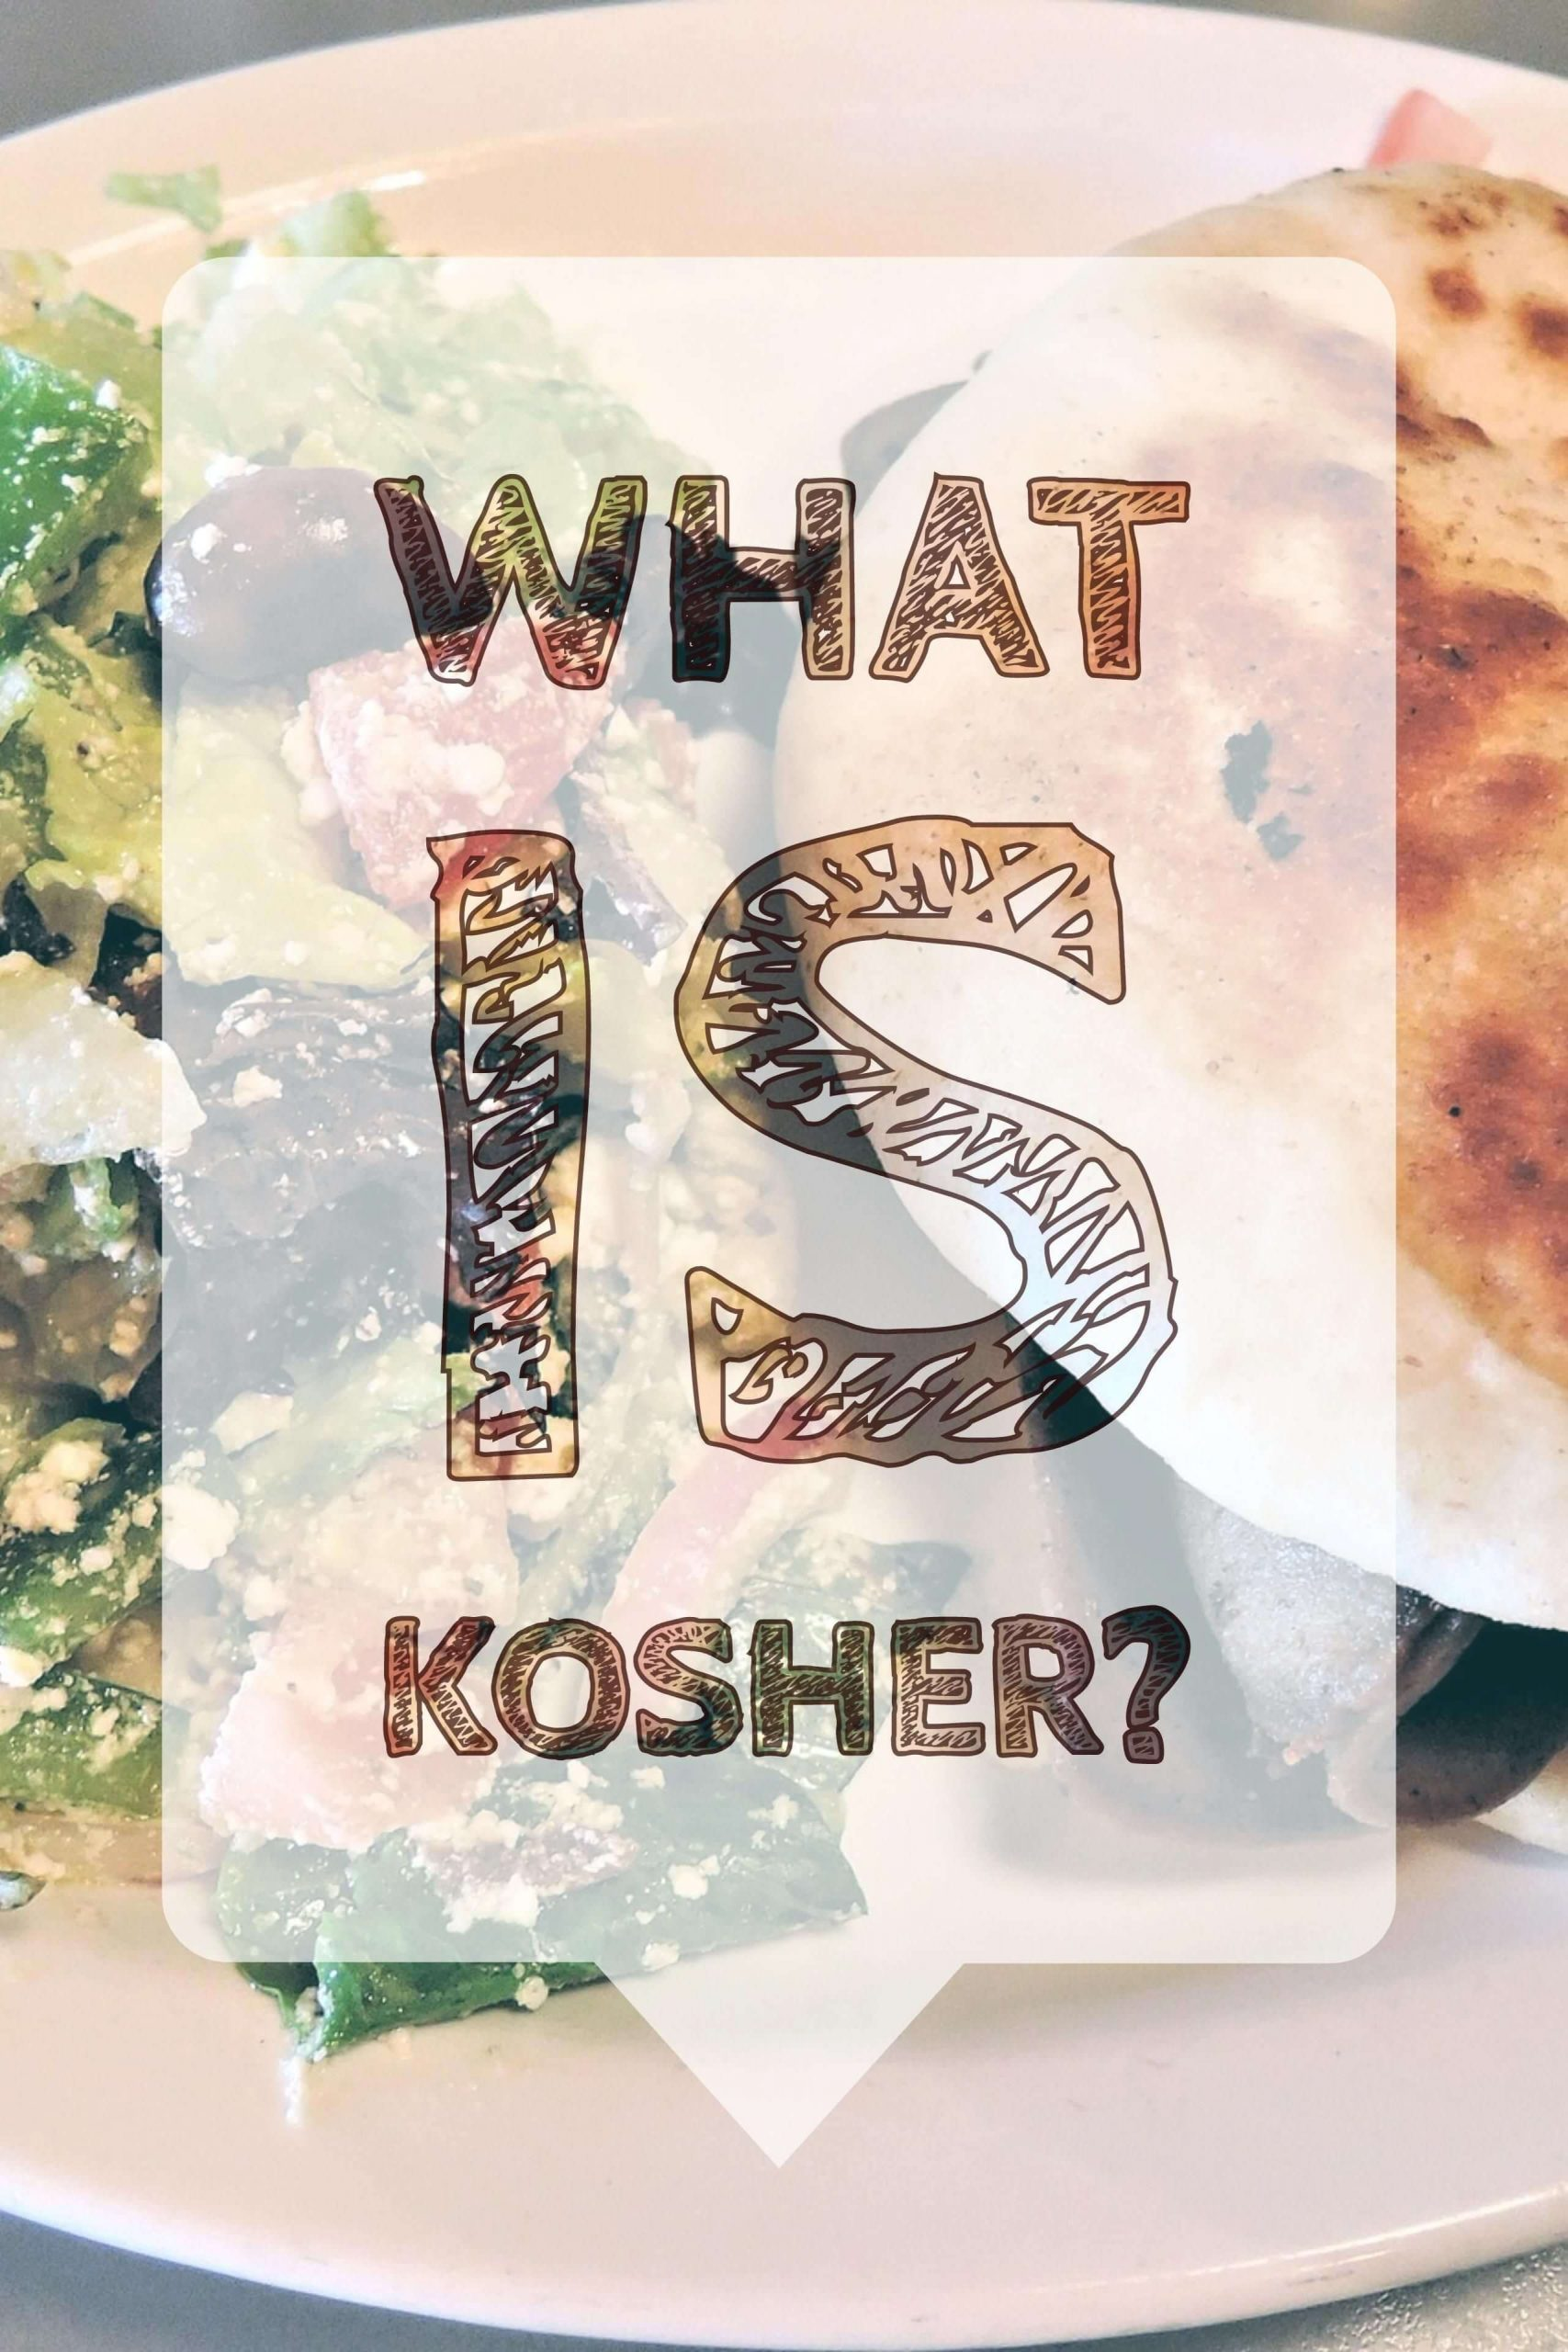 What is Kosher? Which kind of food is meant to be Kosher food?